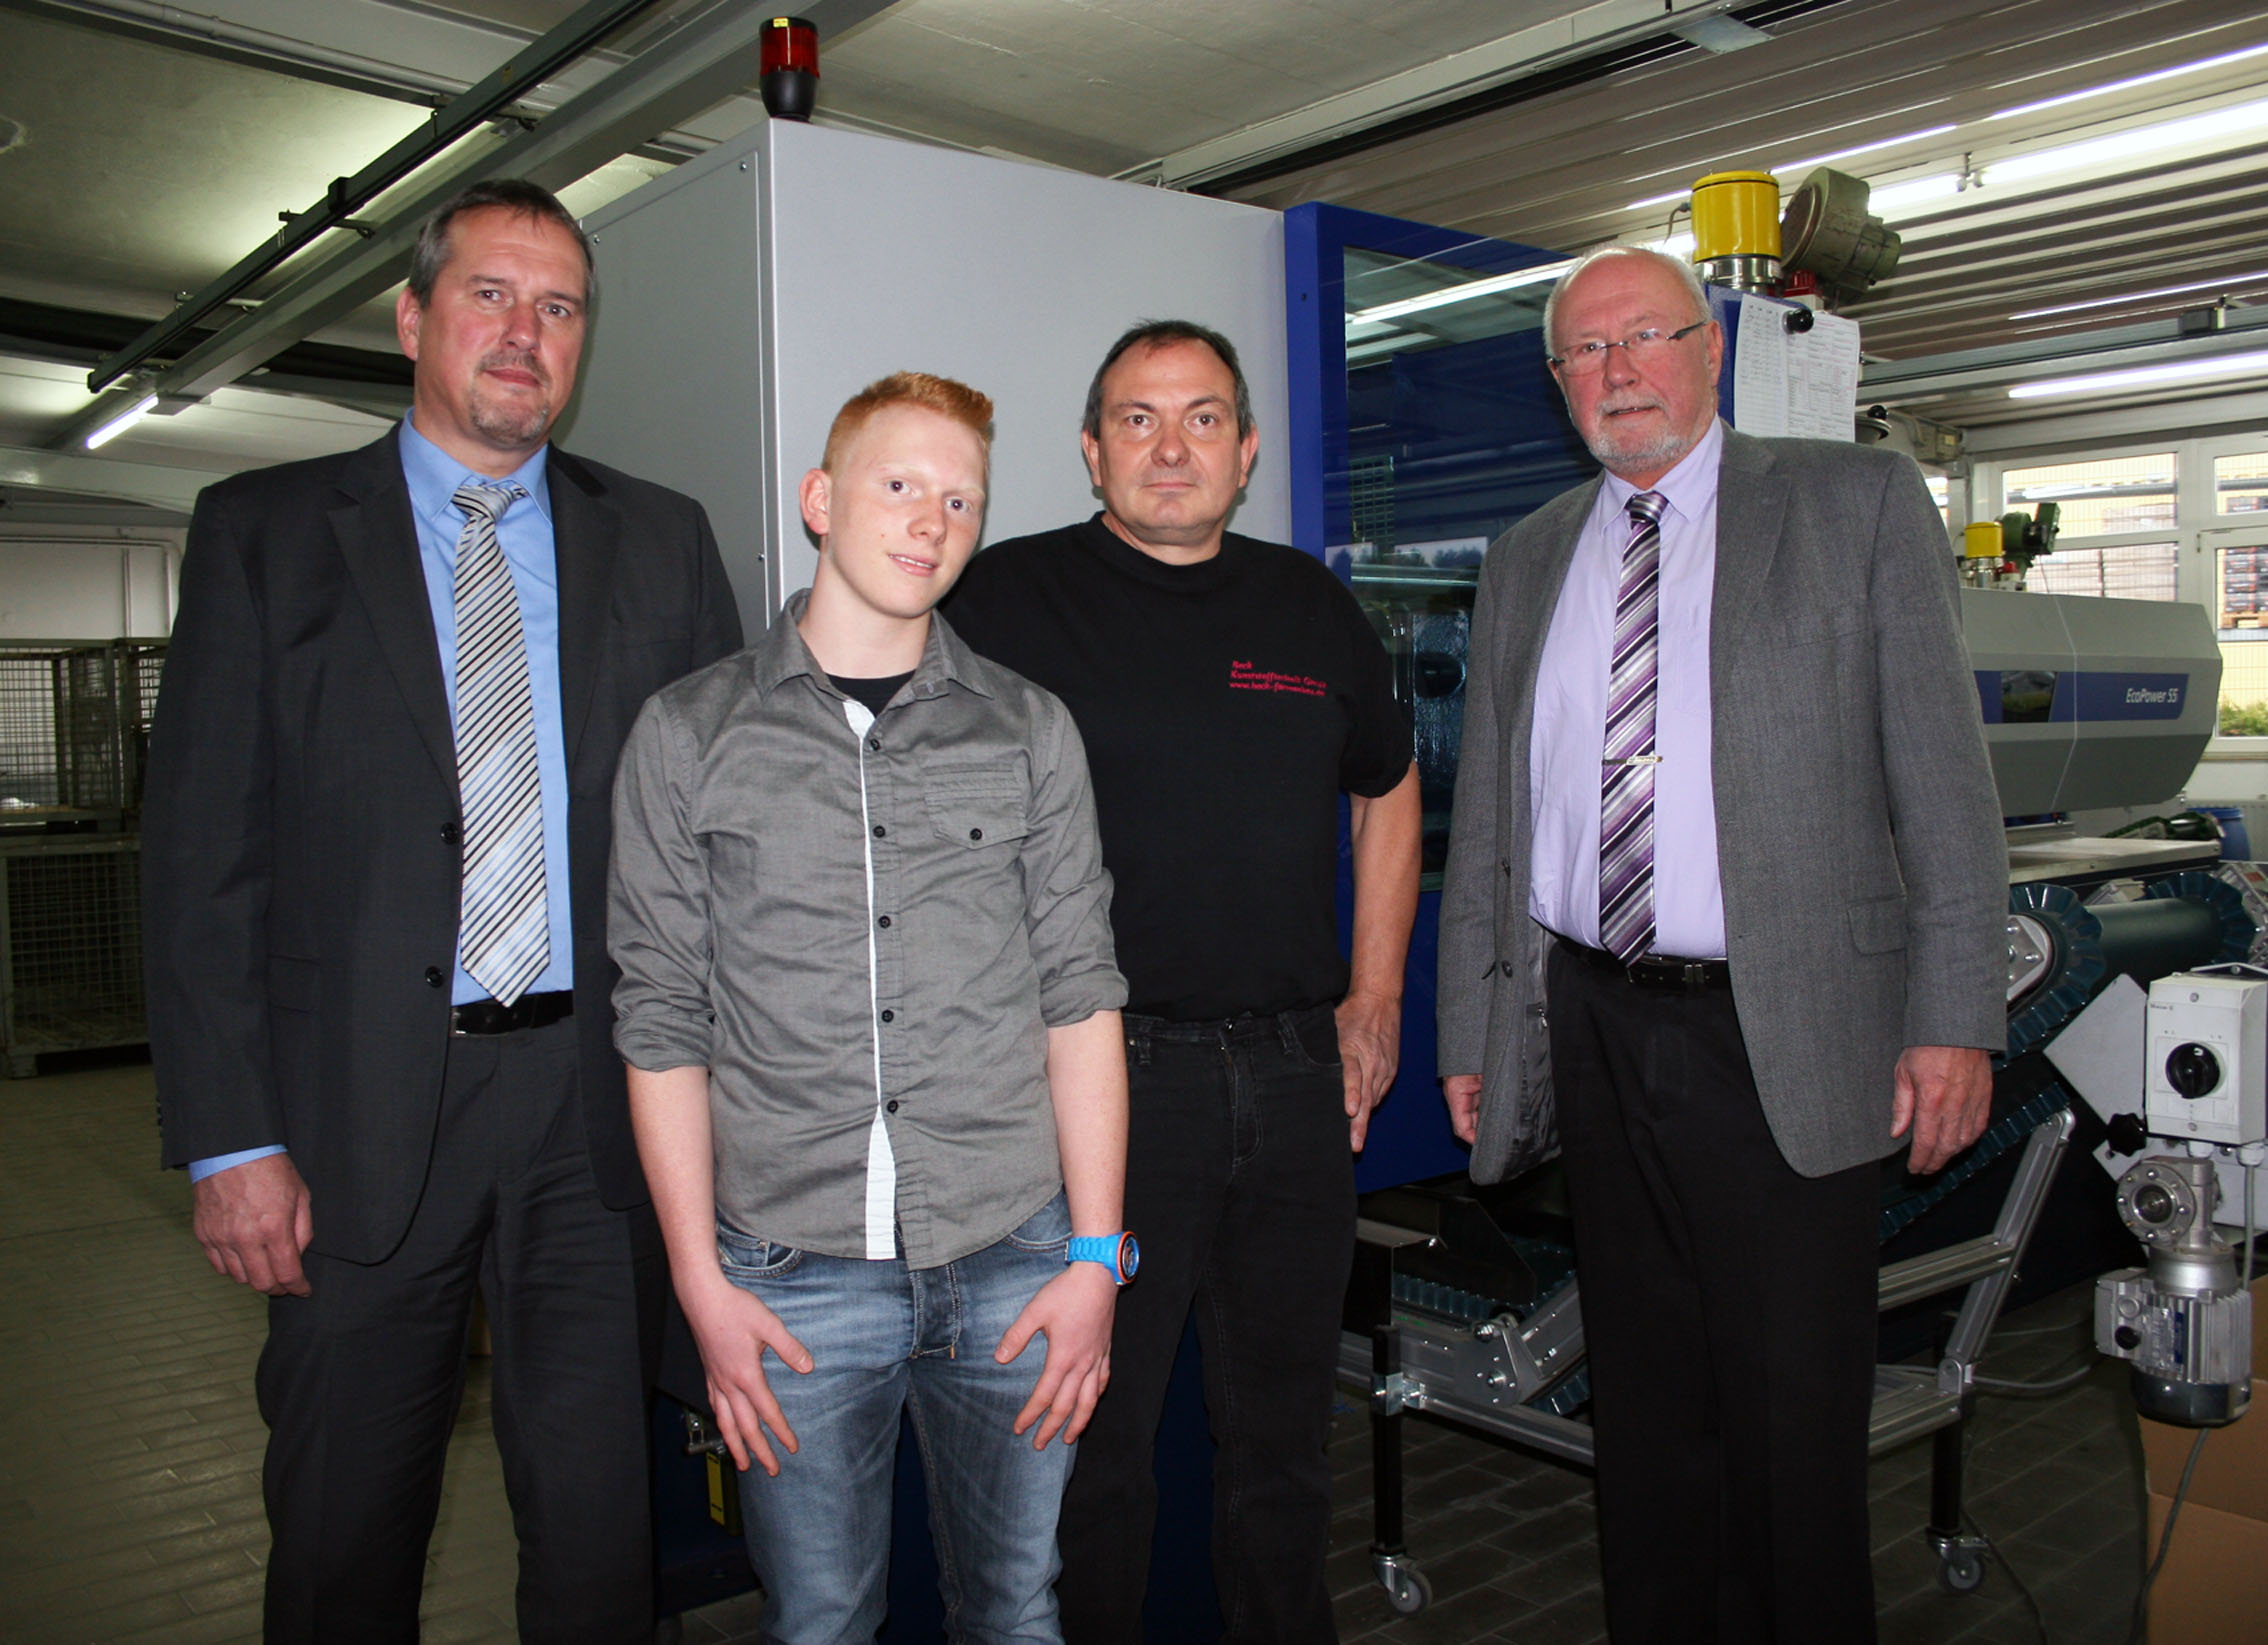 successful with latest injection molding technology from WITTMANN BATTENFELD